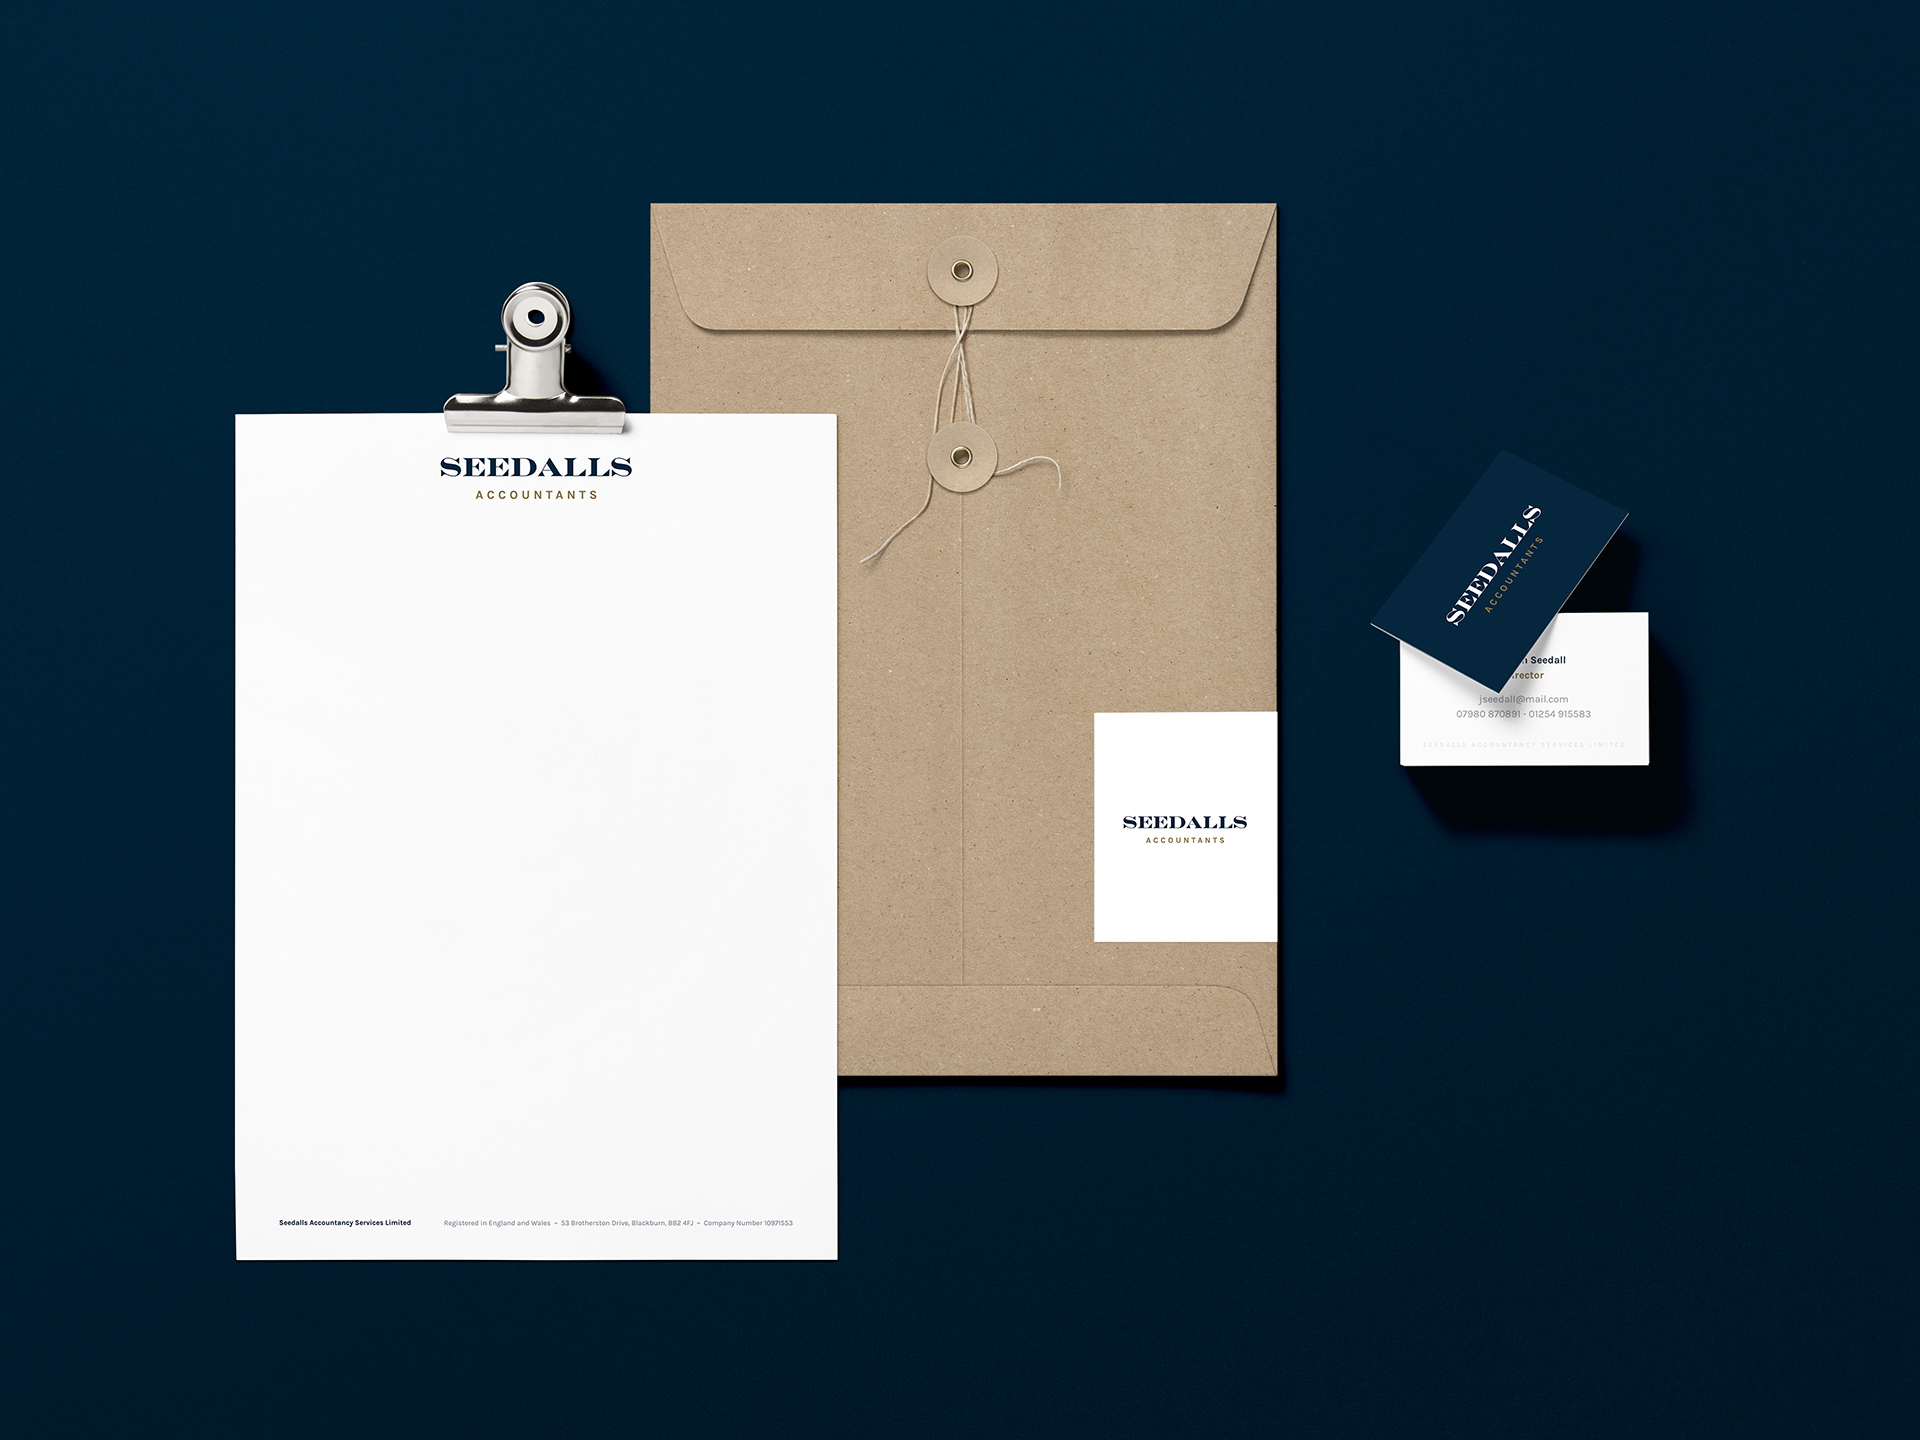 Branding and identity design for a next generation accountancy firm, Seedalls Accountancy Services